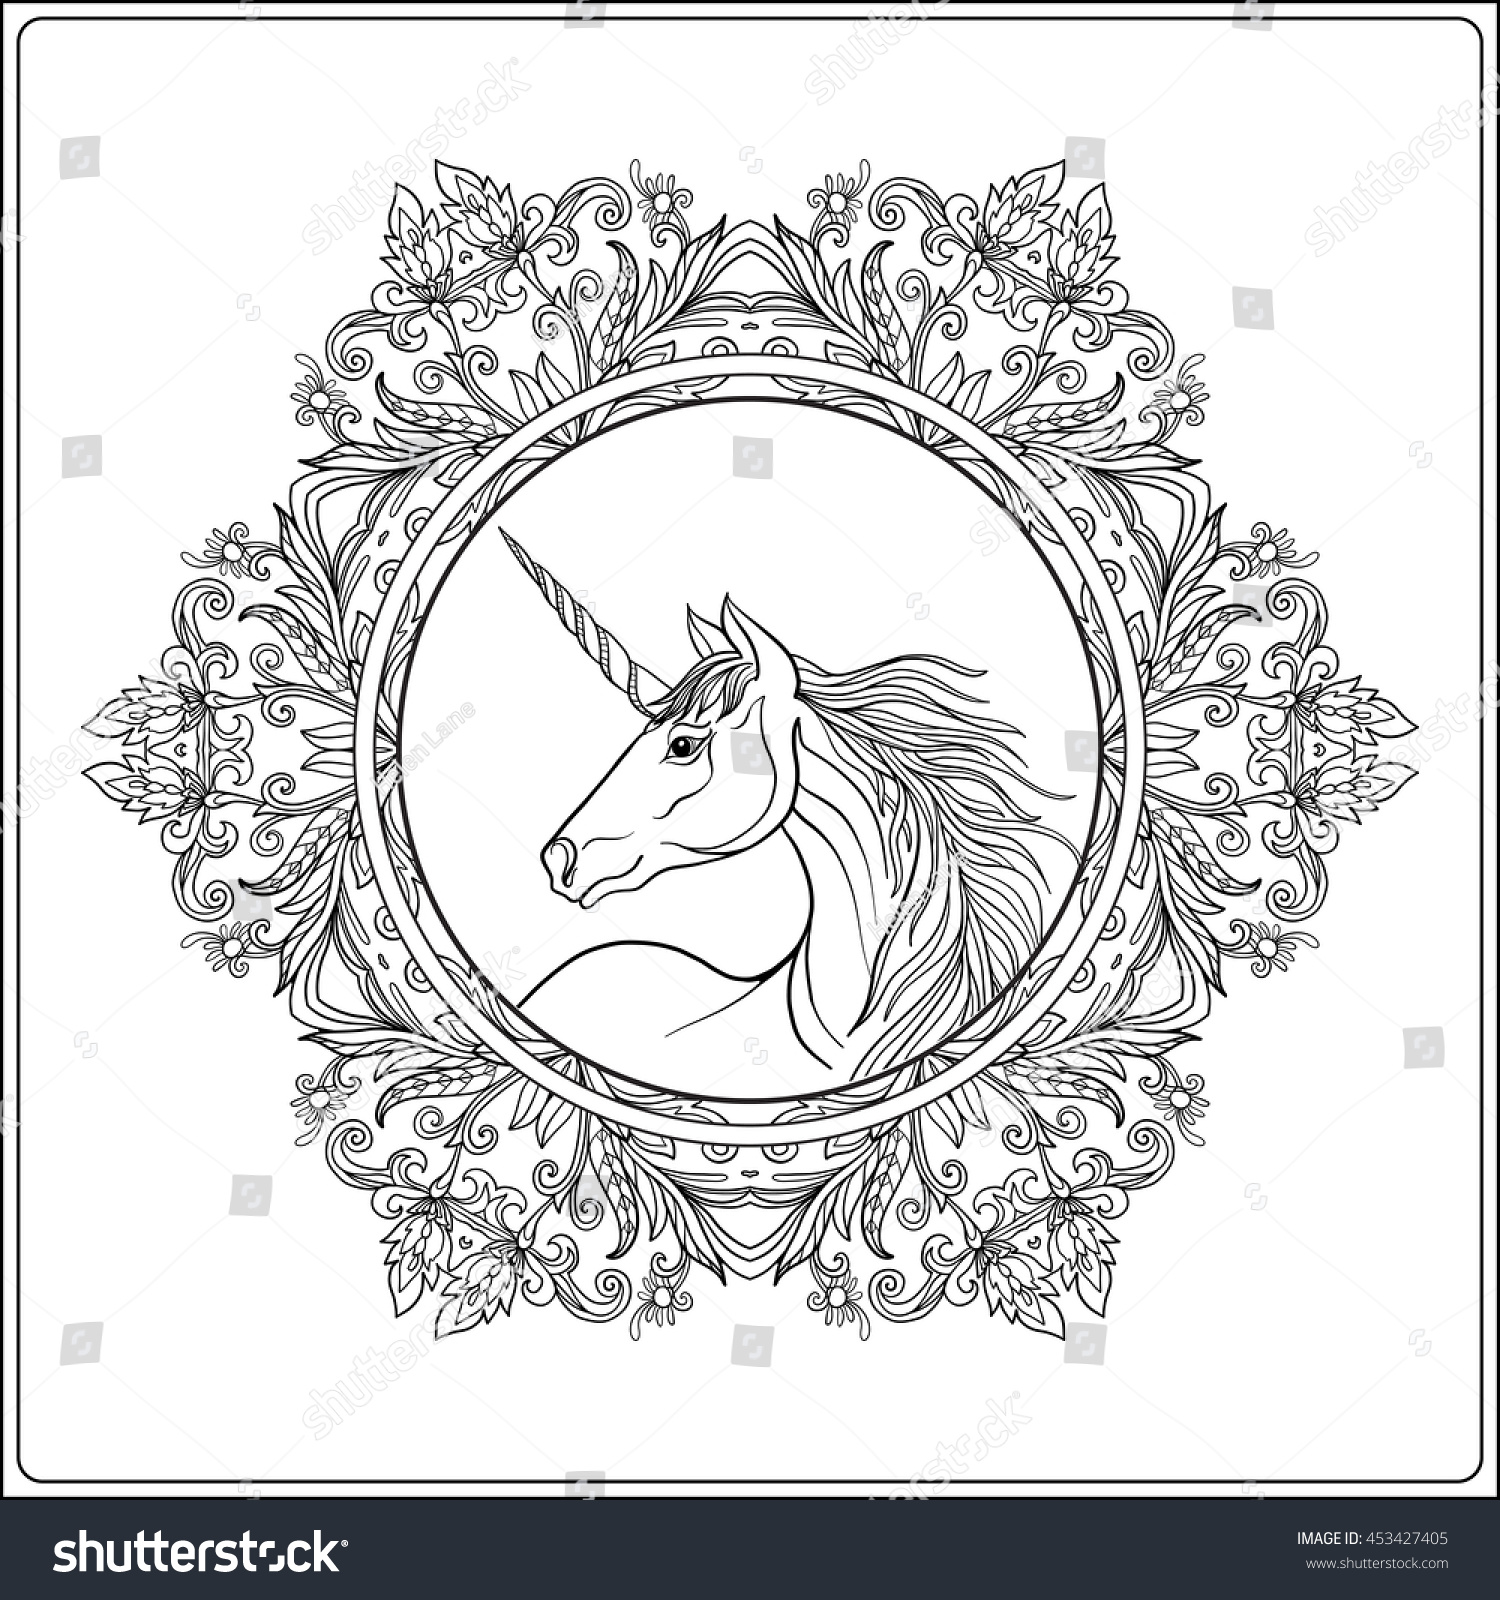 Coloring Pages For Adults Unicorns - Unicorn mandala coloring pages unicorn in vintage decorative floral mandala frame vector illustration coloring book